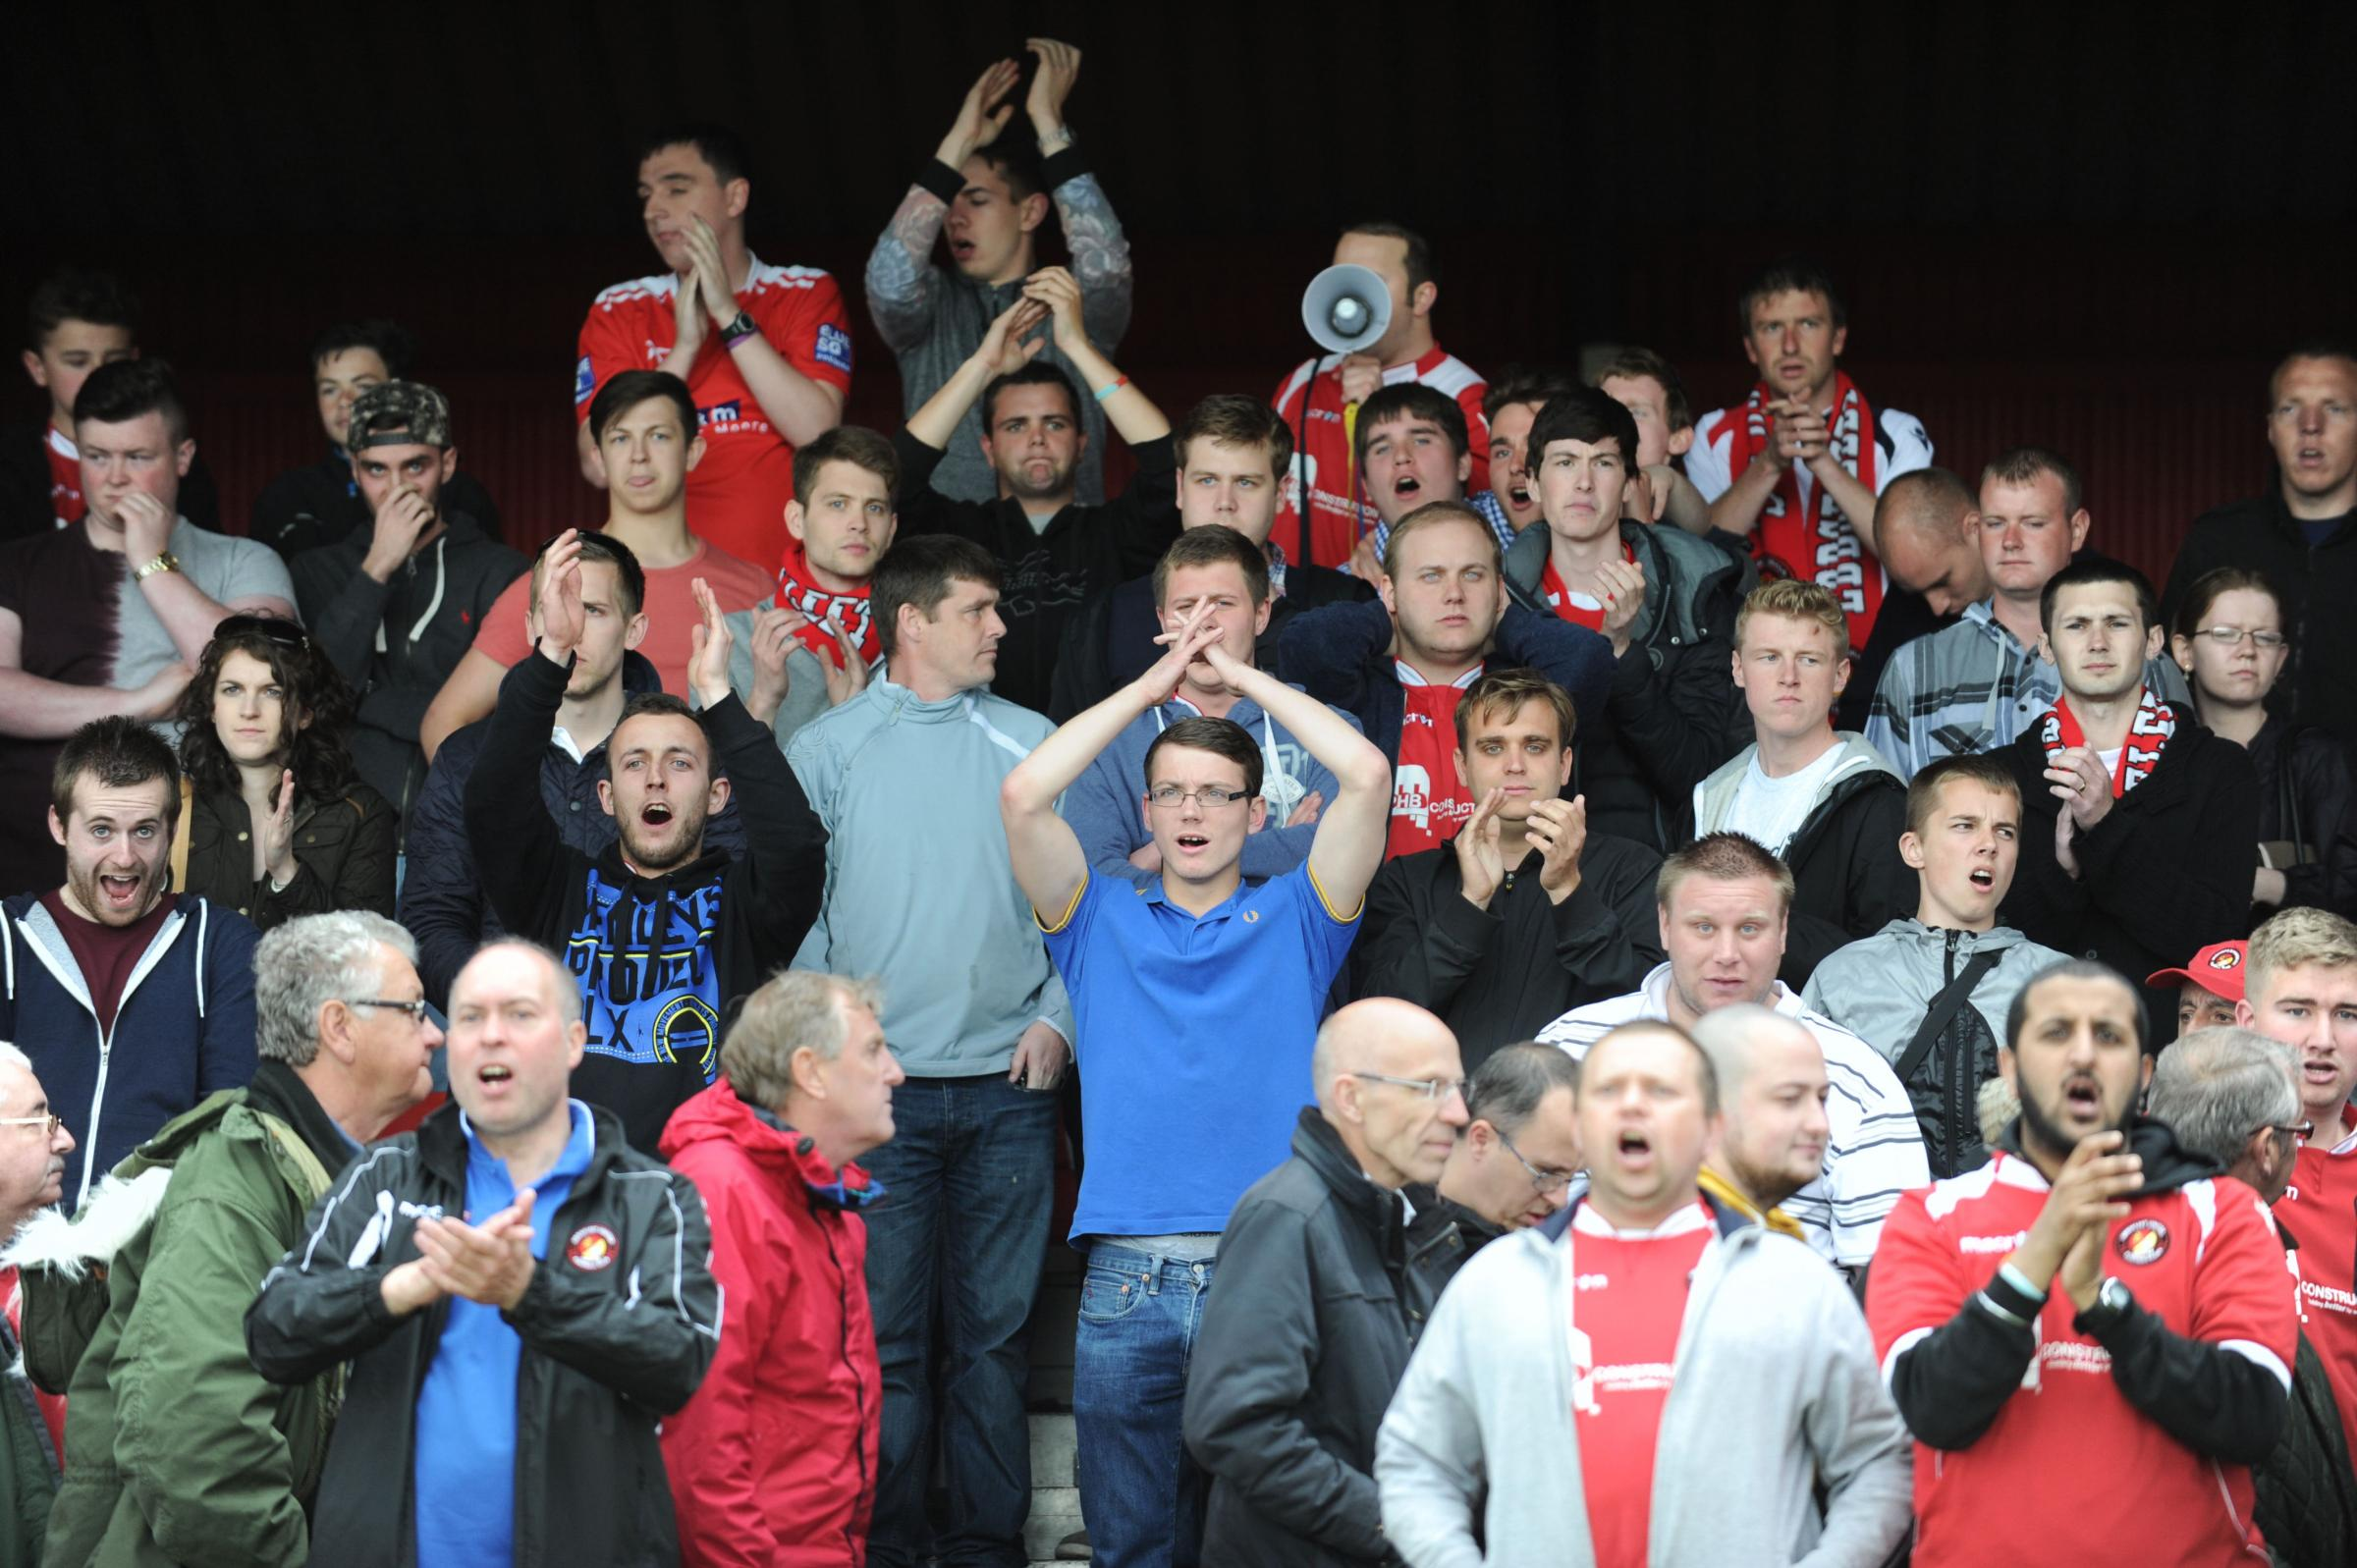 News Shopper: The Fleet fans keep singing